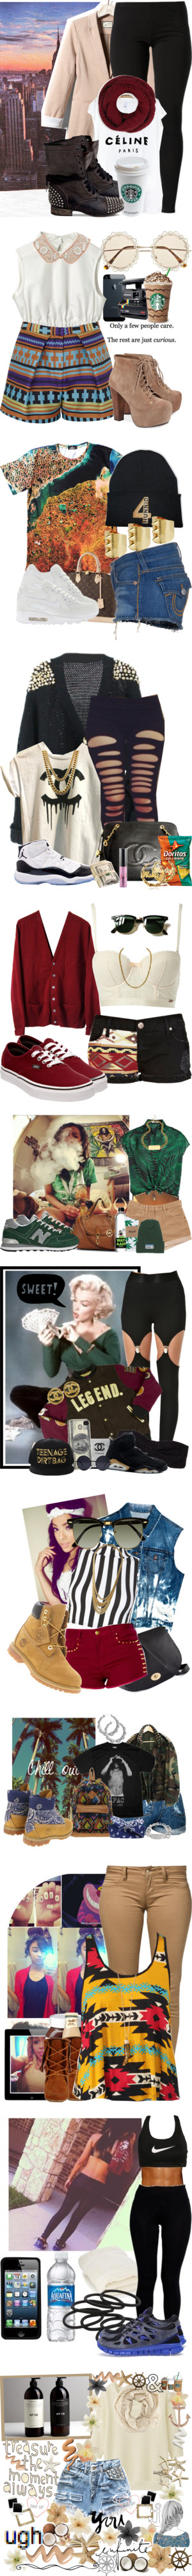 """""""F#ck That Fake Shit I Don't Need No Friends"""" by indigow99 ❤ liked on Polyvore"""